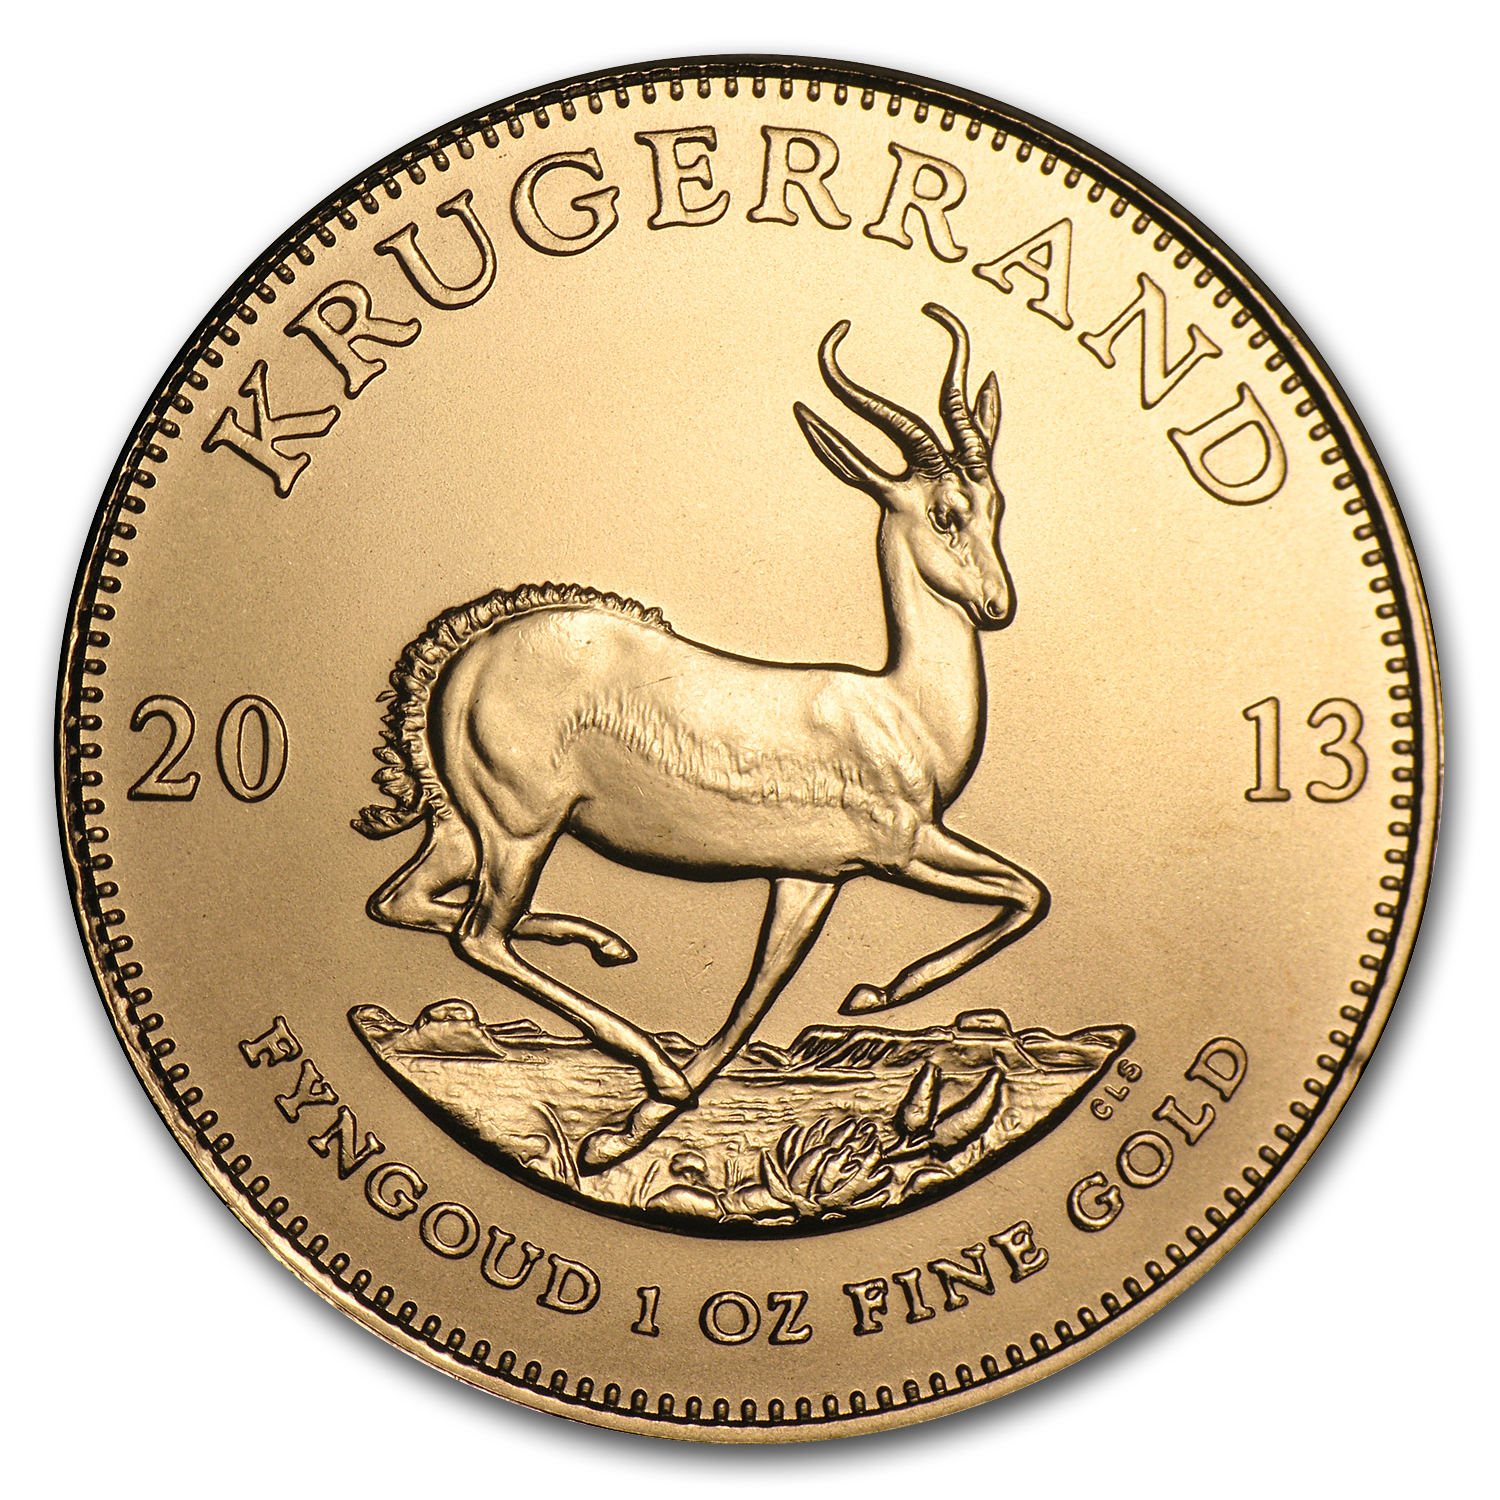 2013 South Africa 1 oz Gold Krugerrand